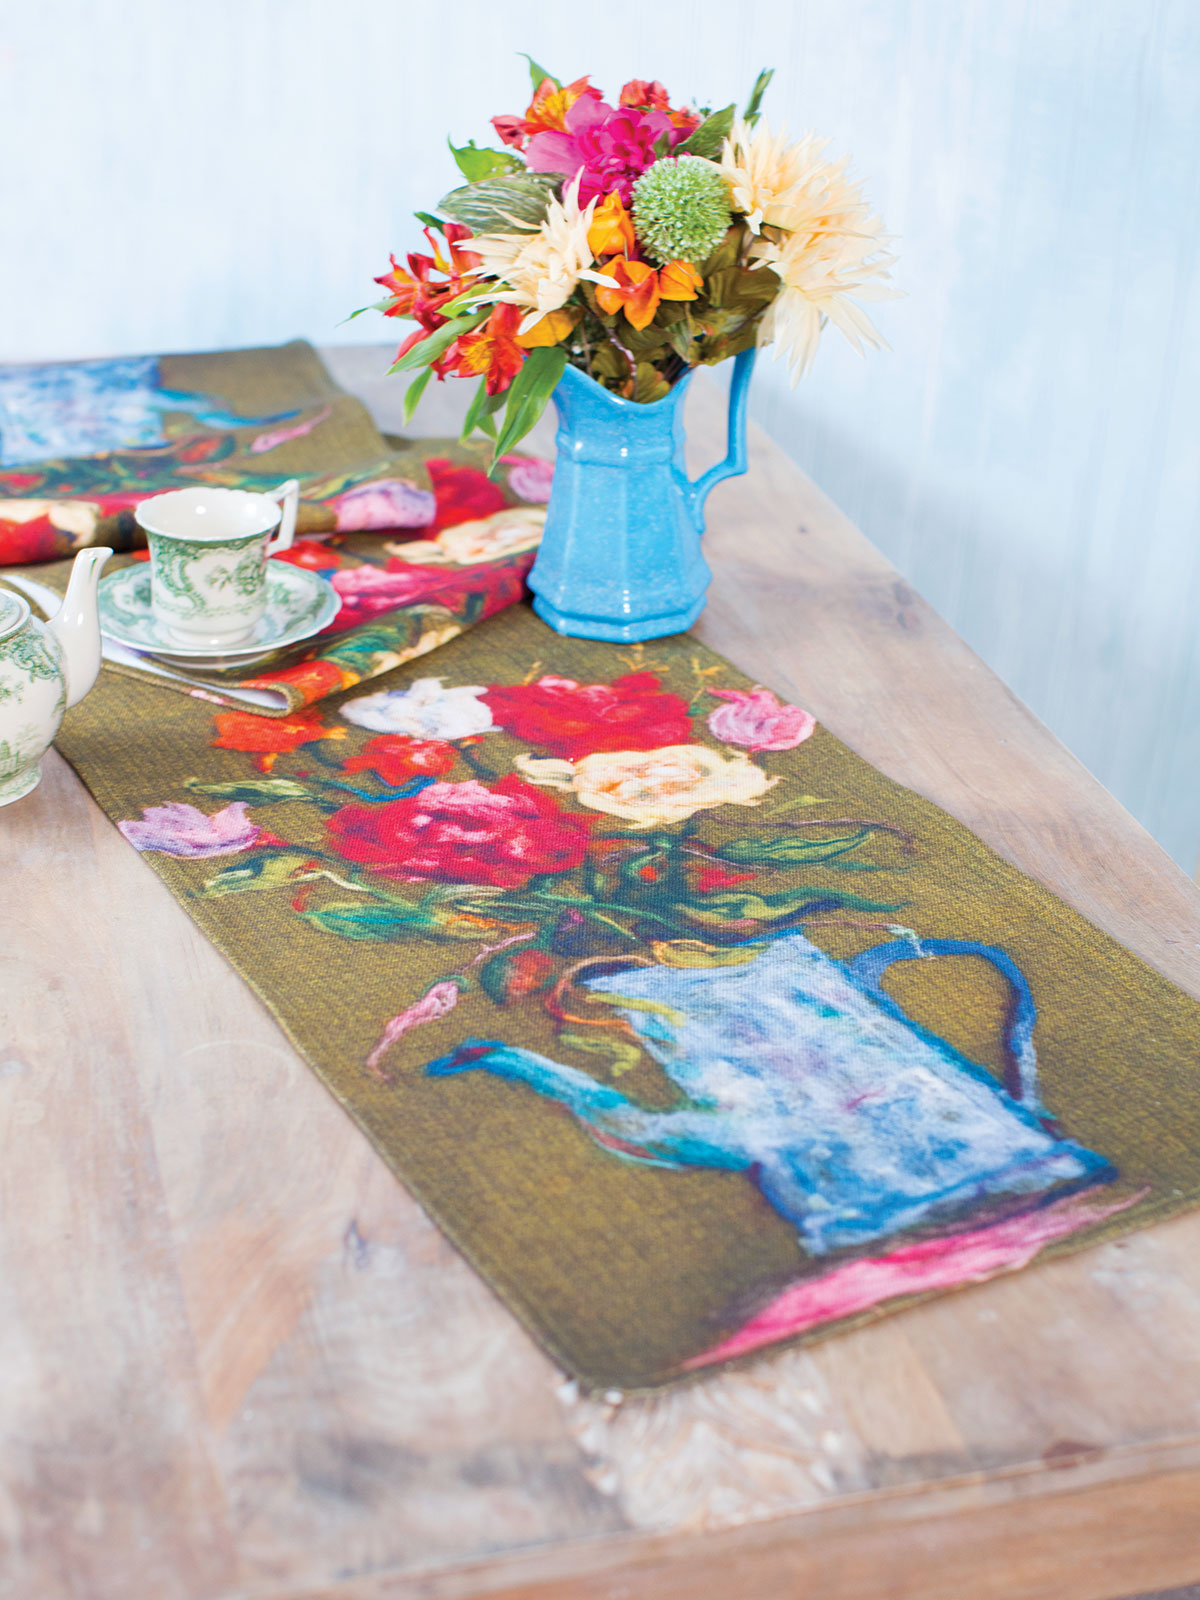 Grammie's Garden Table Runner